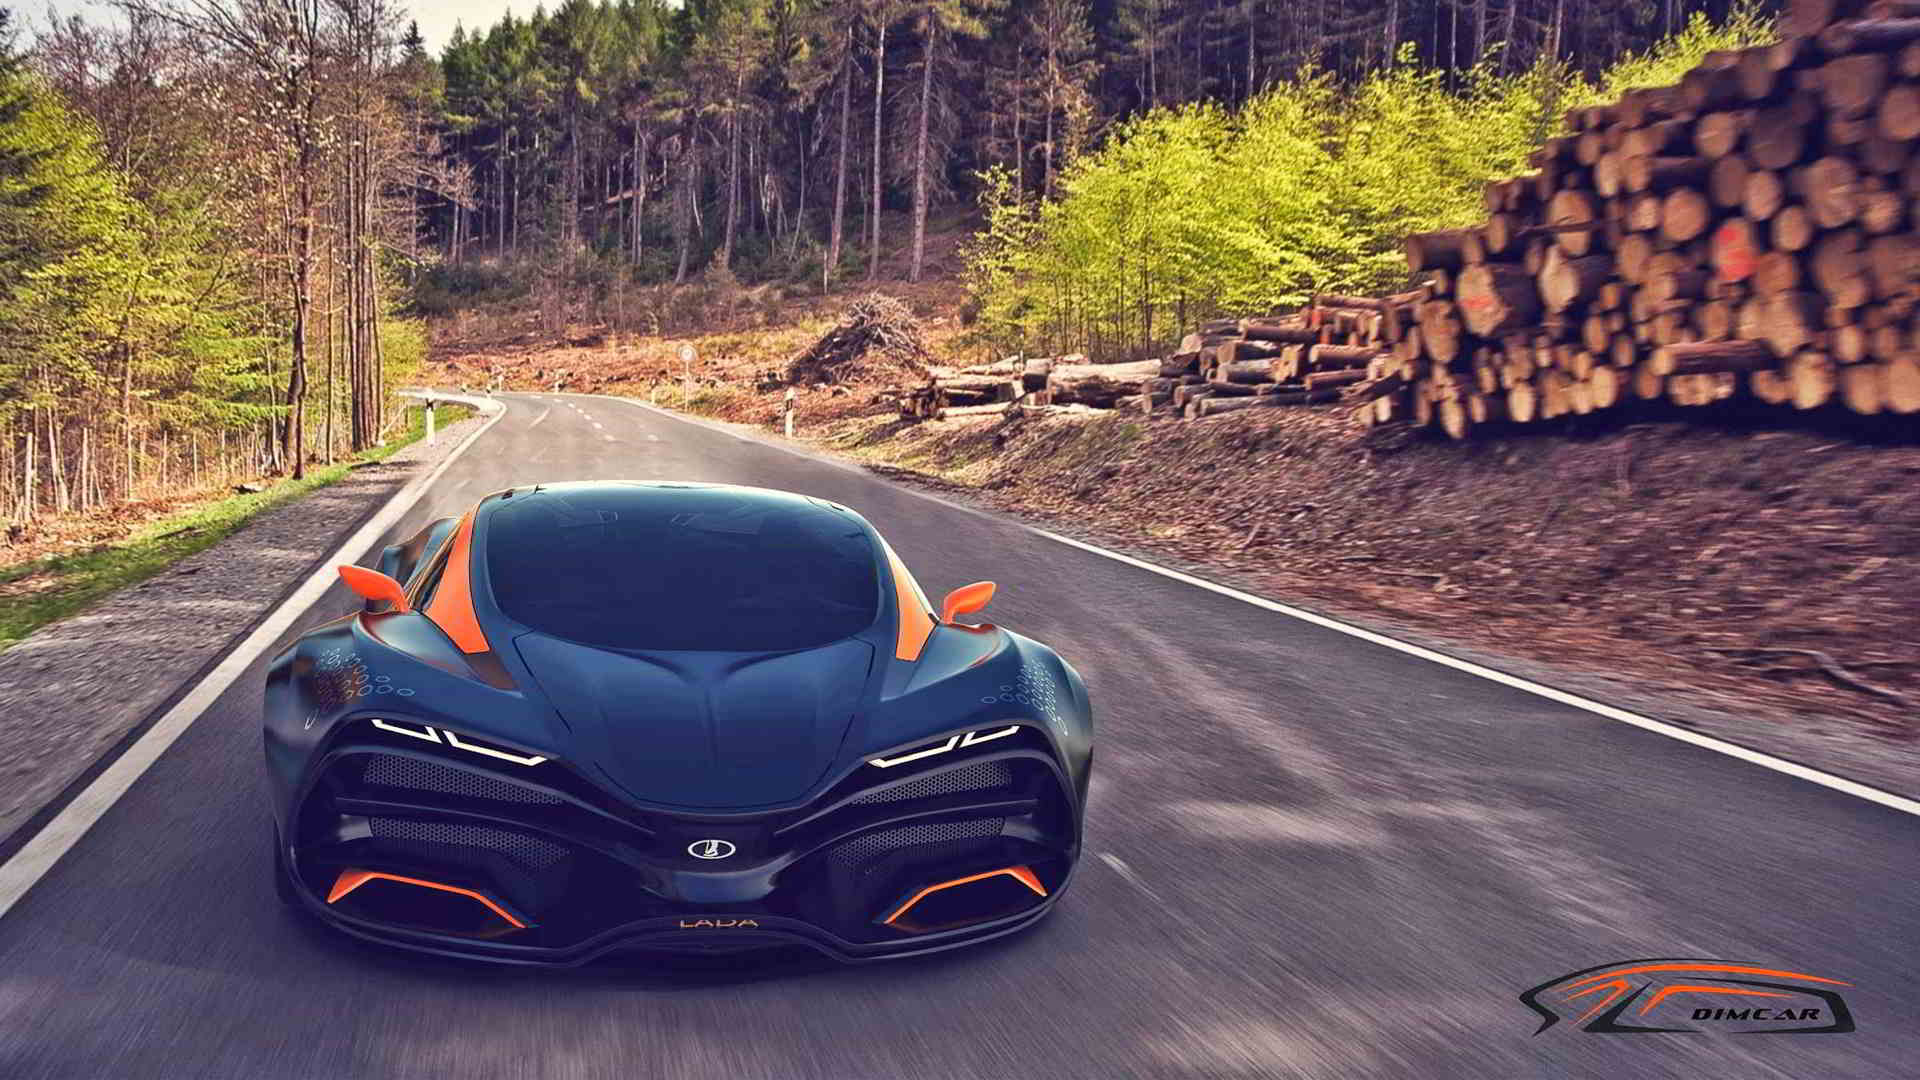 Concept Car Wallpapers